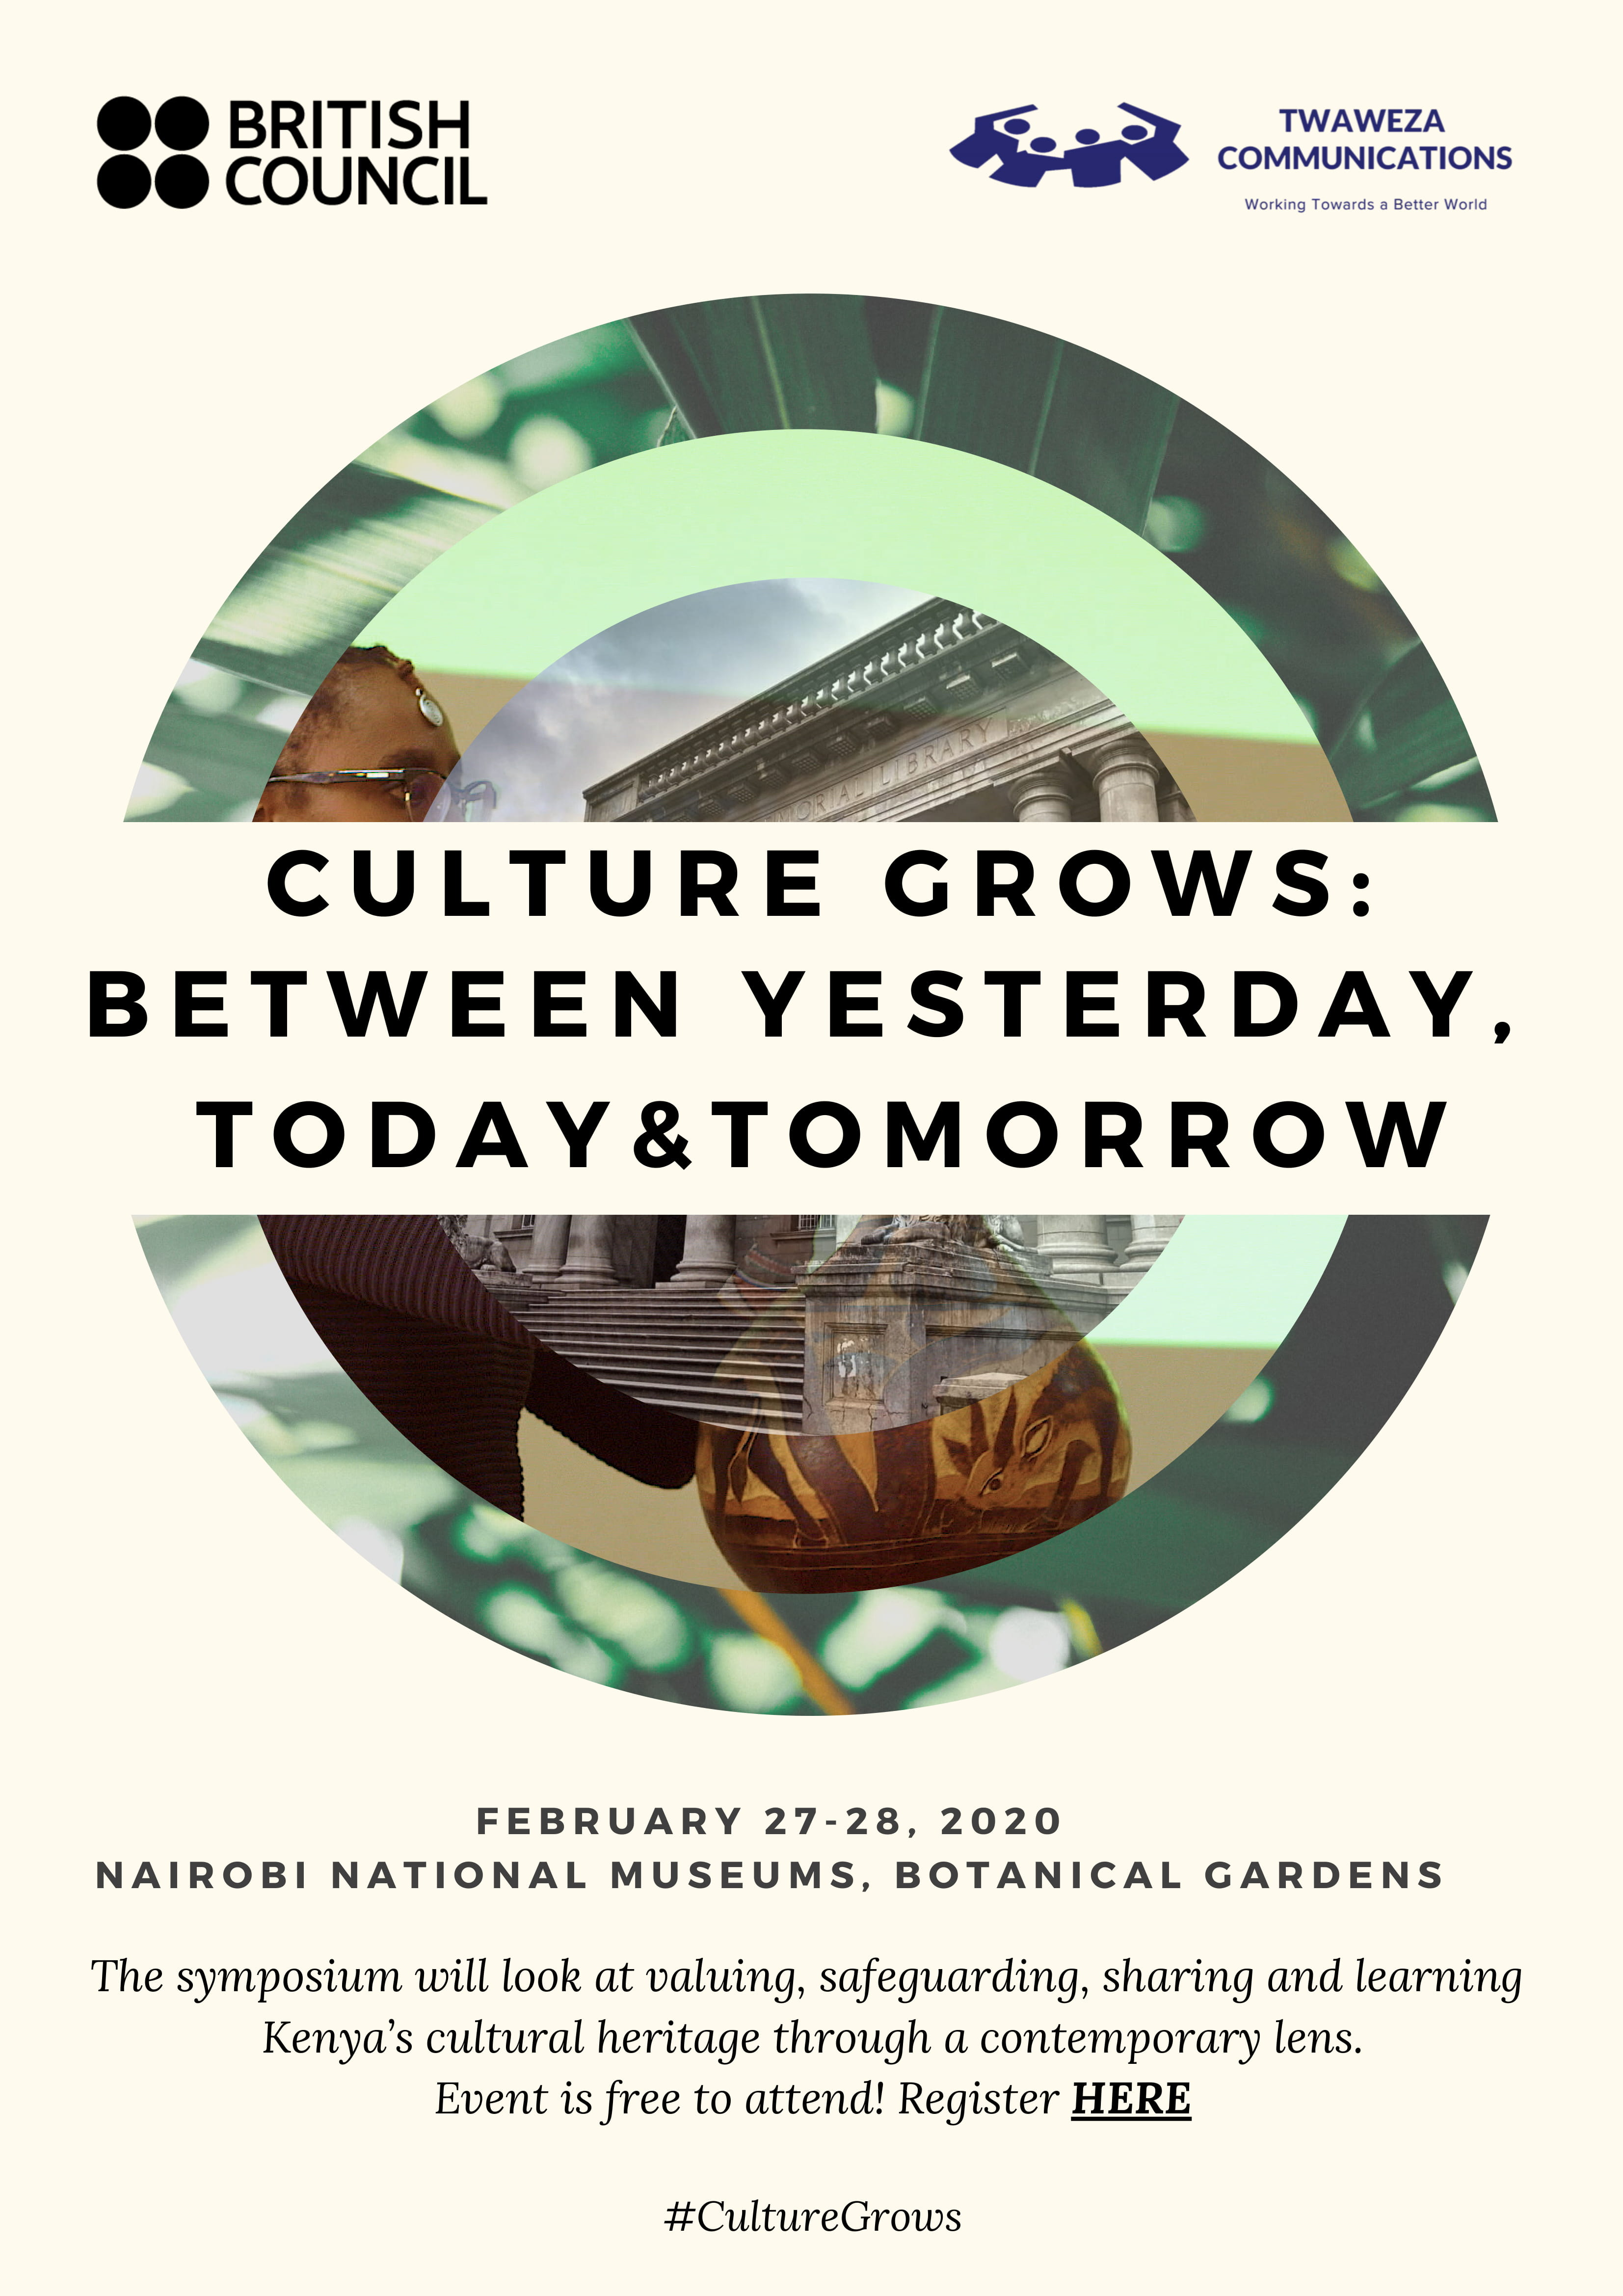 Culture Grows: Between Yesterday, Today and Tomorrow Symposium